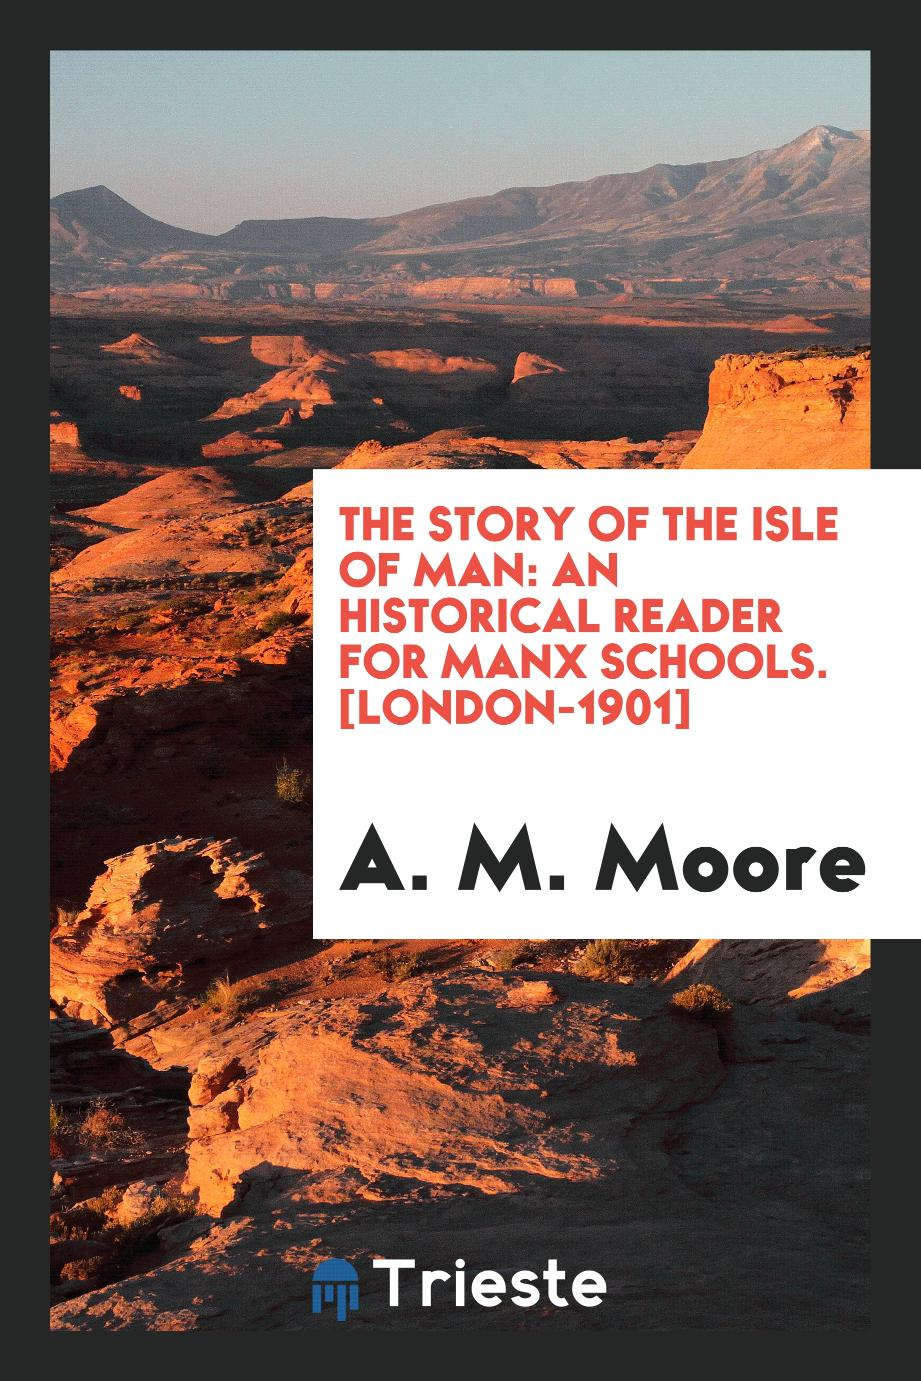 The Story of the Isle of Man: An Historical Reader for Manx Schools. [London-1901]